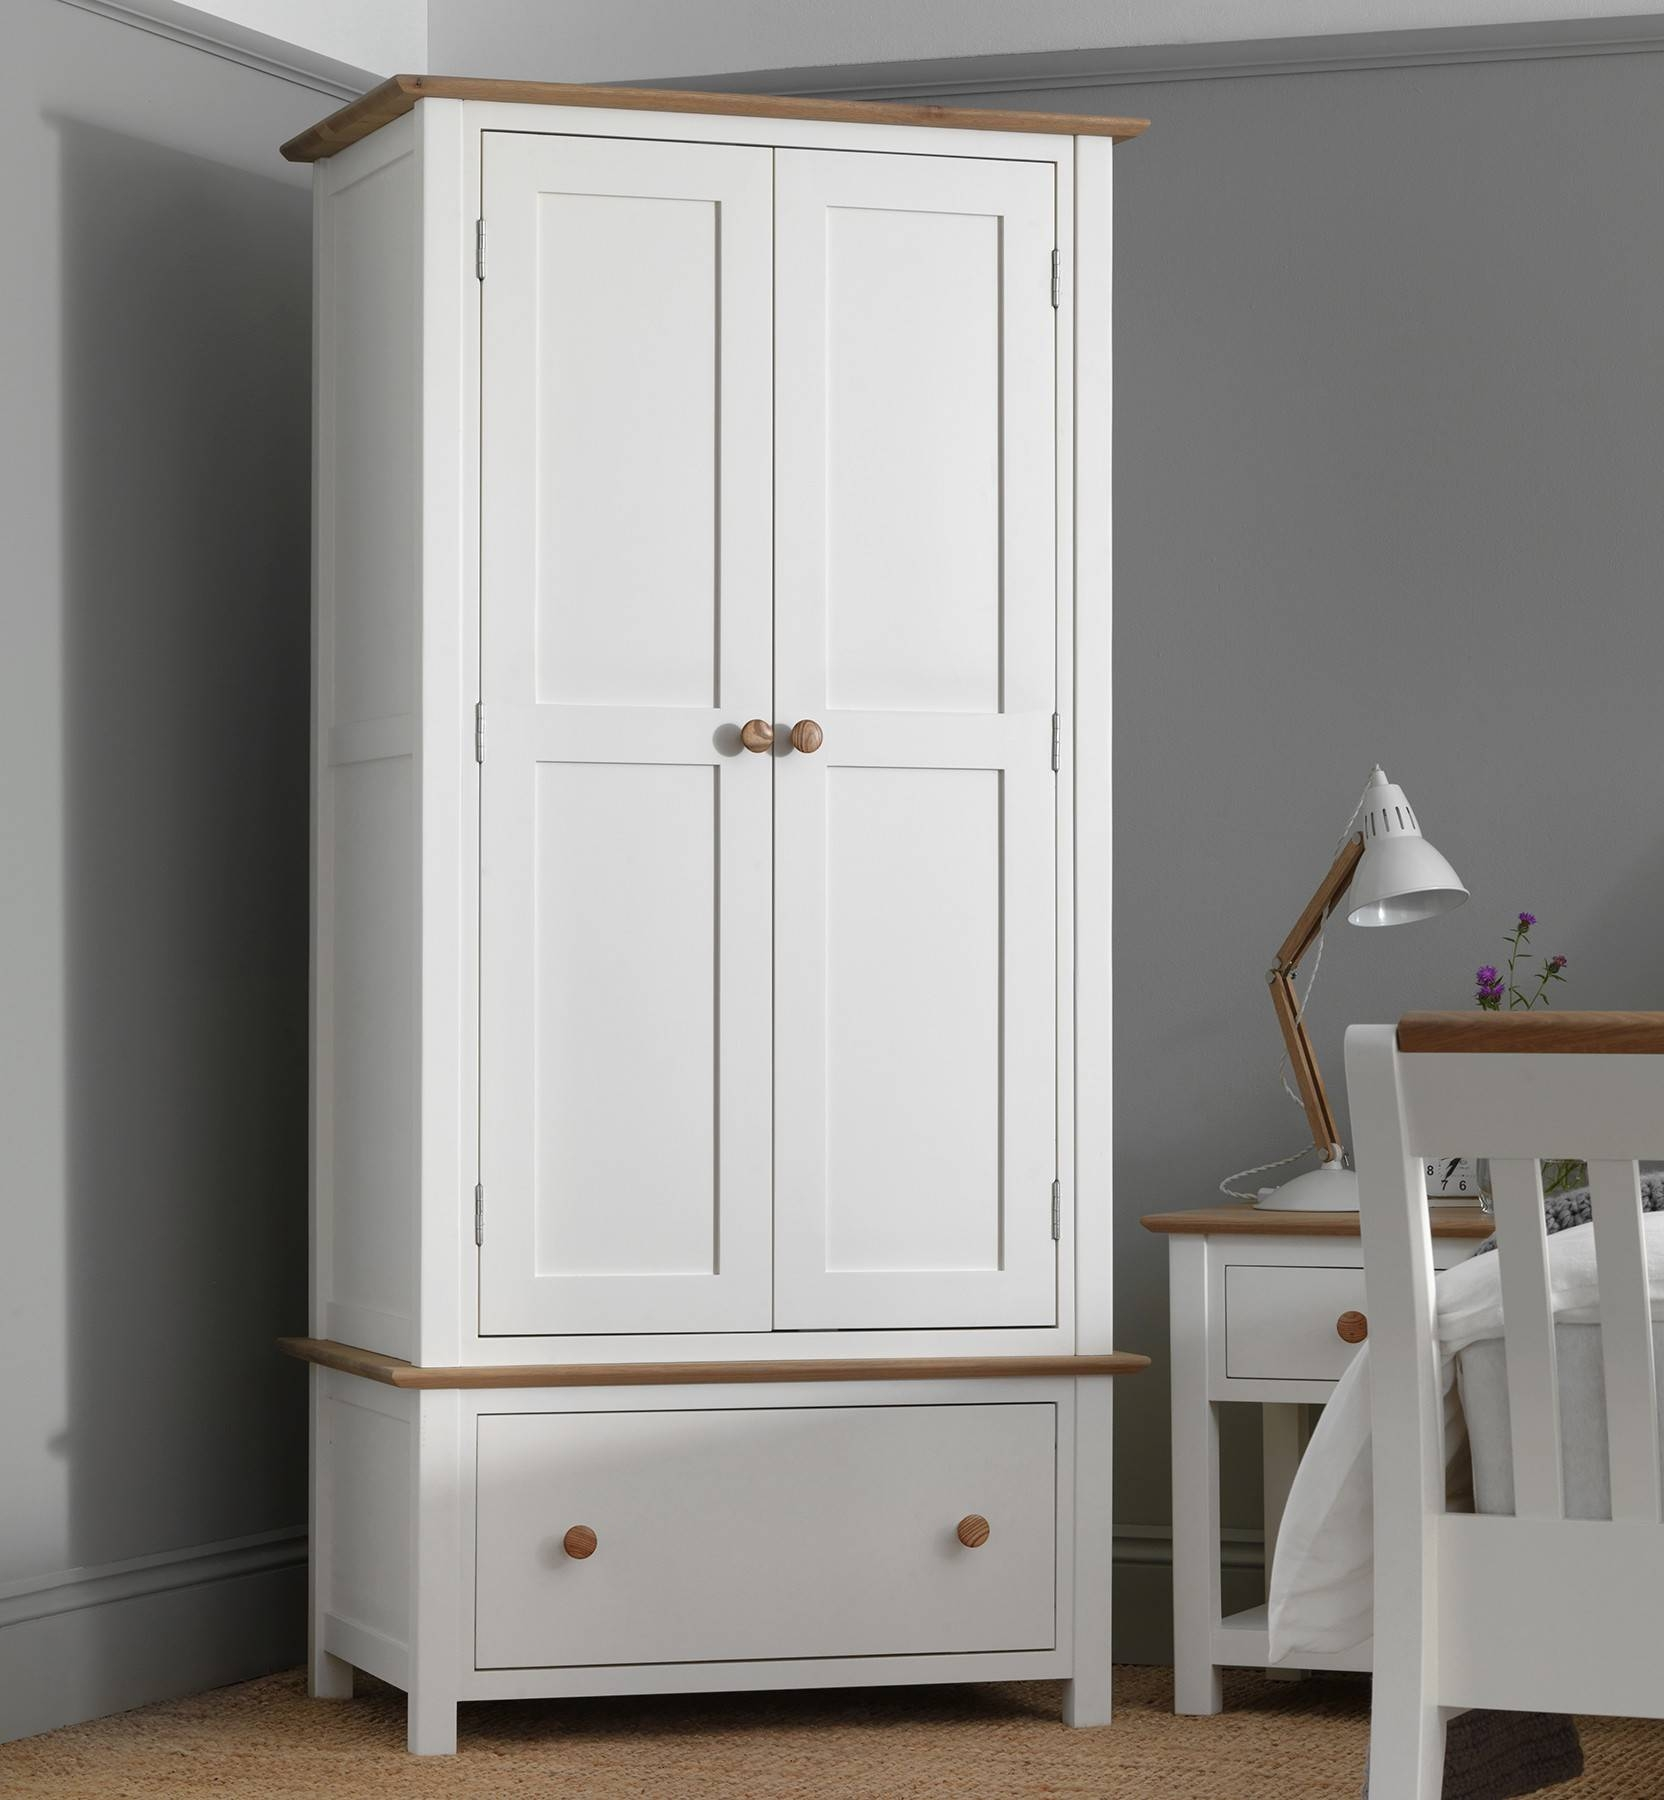 White Paint Wood Wardrobe With Brown Wood Pull And White Wood Side with regard to White Wood Wardrobes (Image 13 of 15)